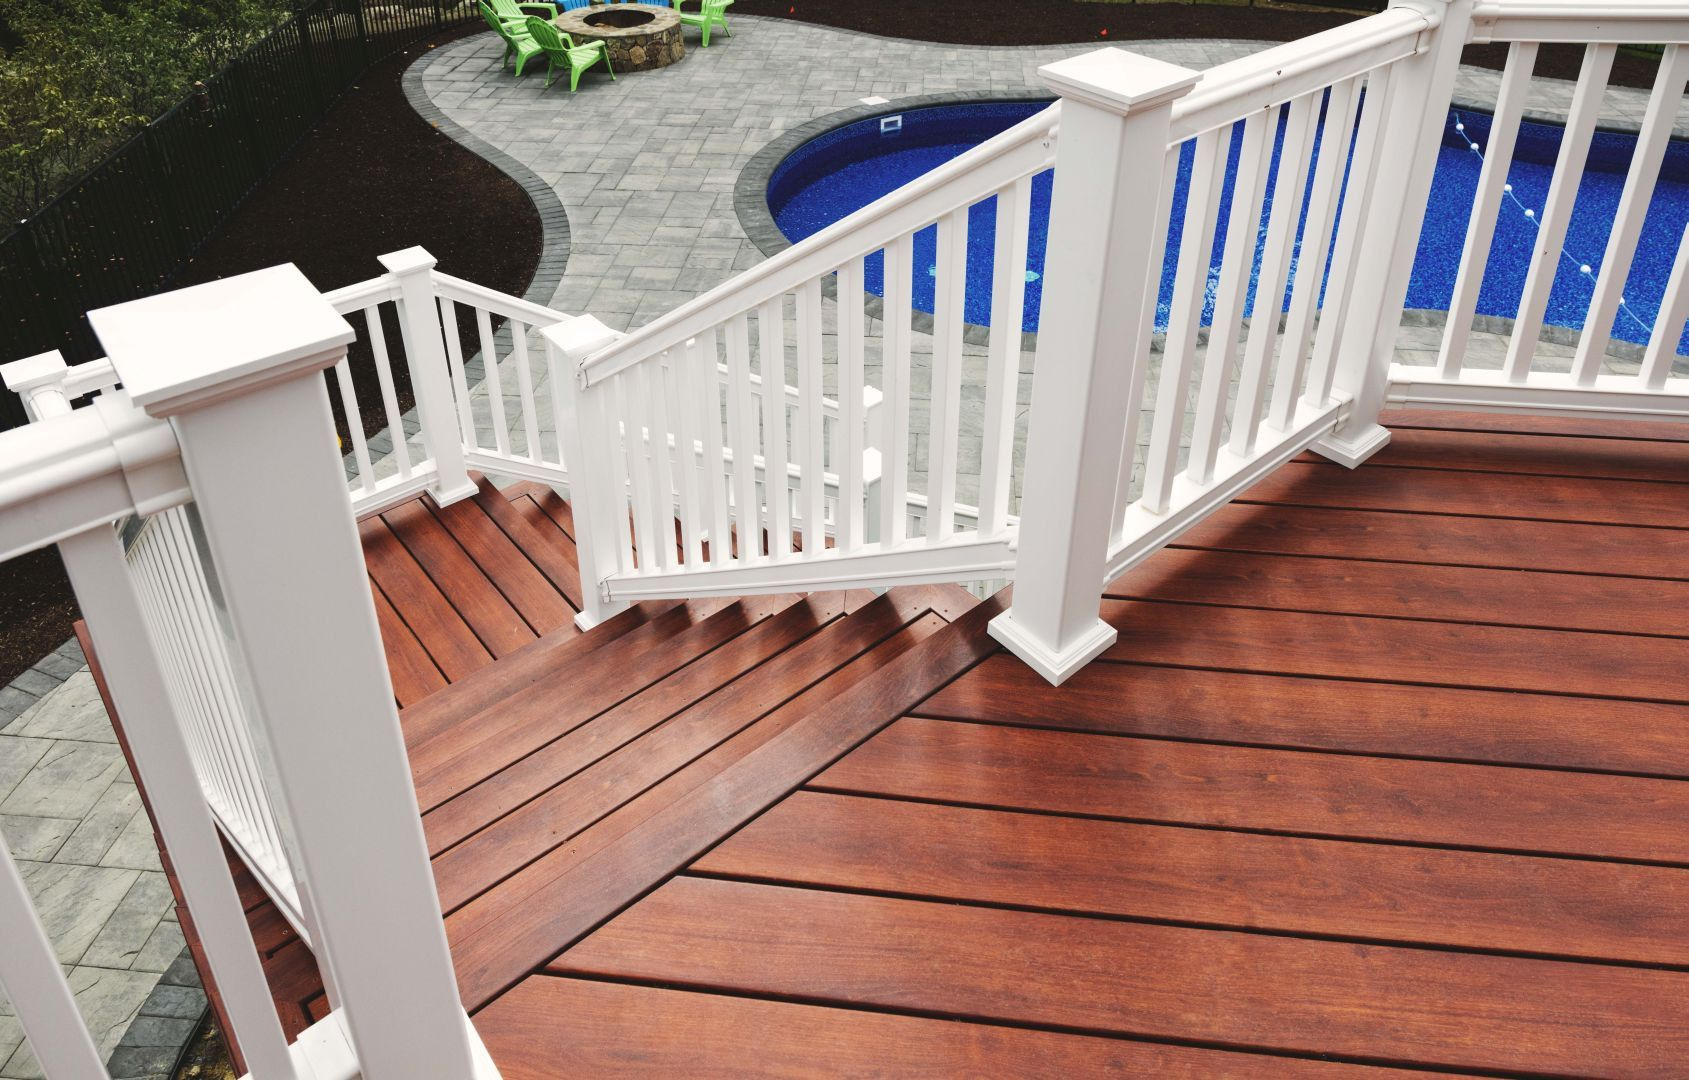 Awesome Menards Composite Decking (With images) Patio